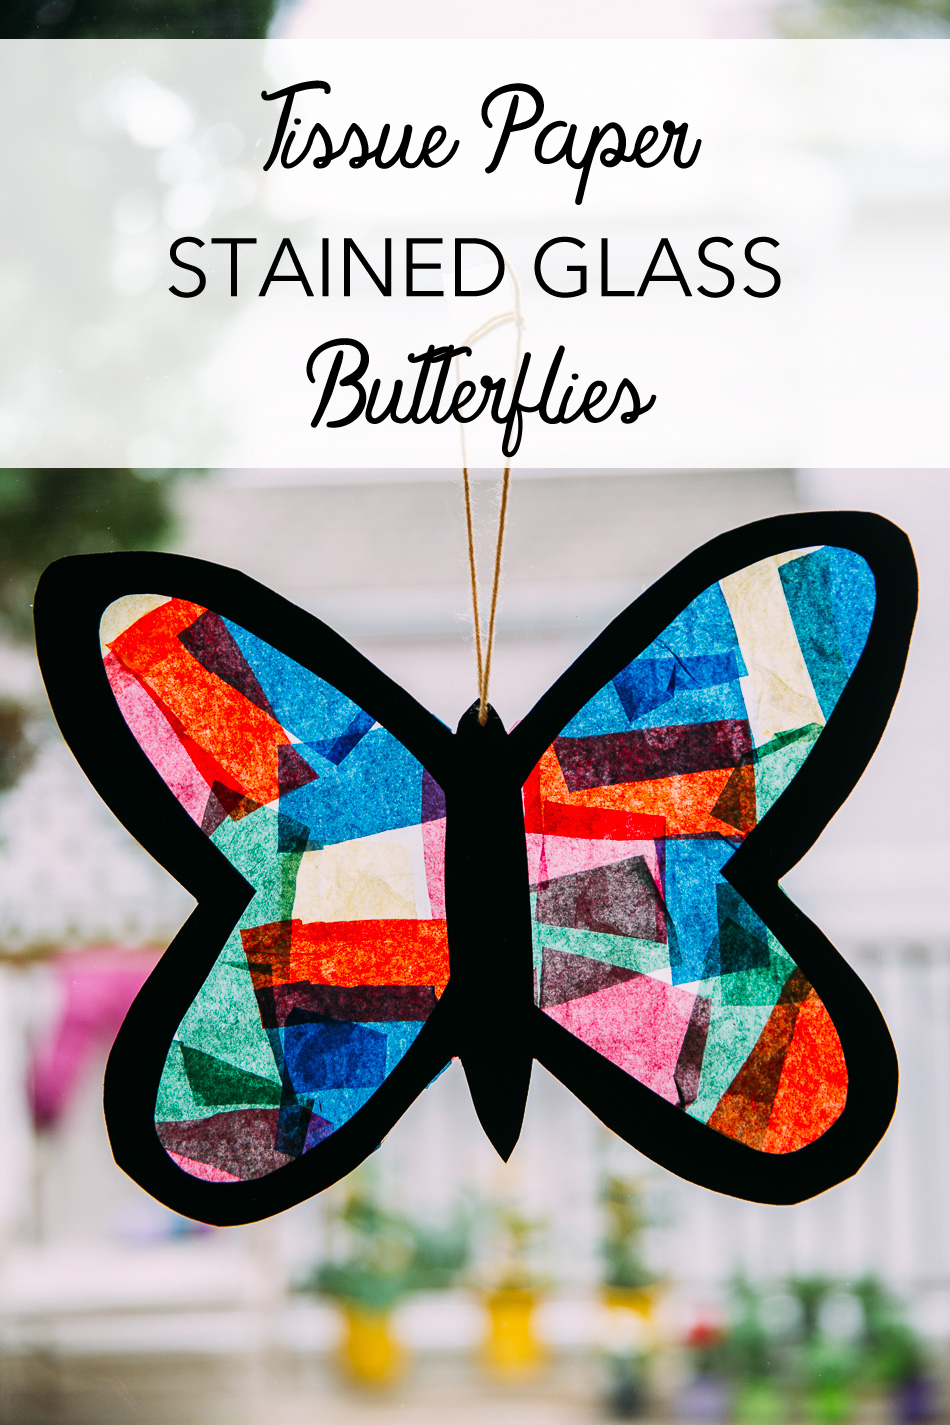 Tissue Paper Stained Glass Butterflies